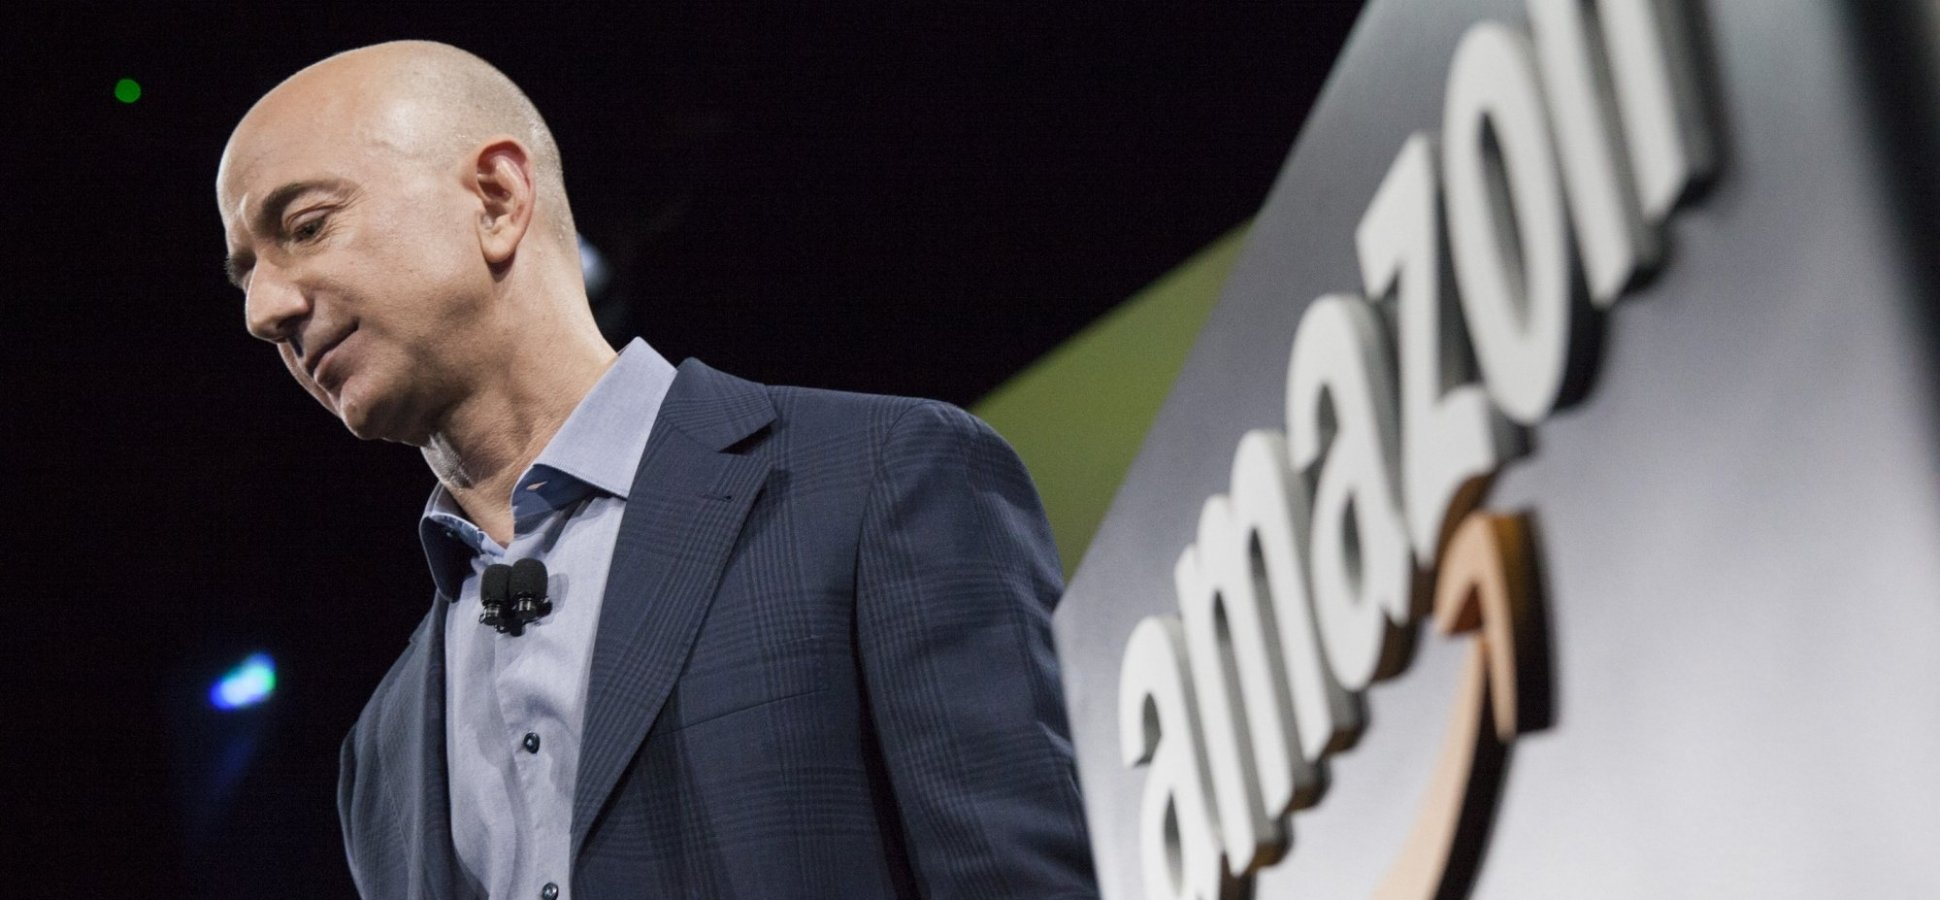 Amazon Is Moving Its Worldwide Operations Division From Seattle to Bellevue